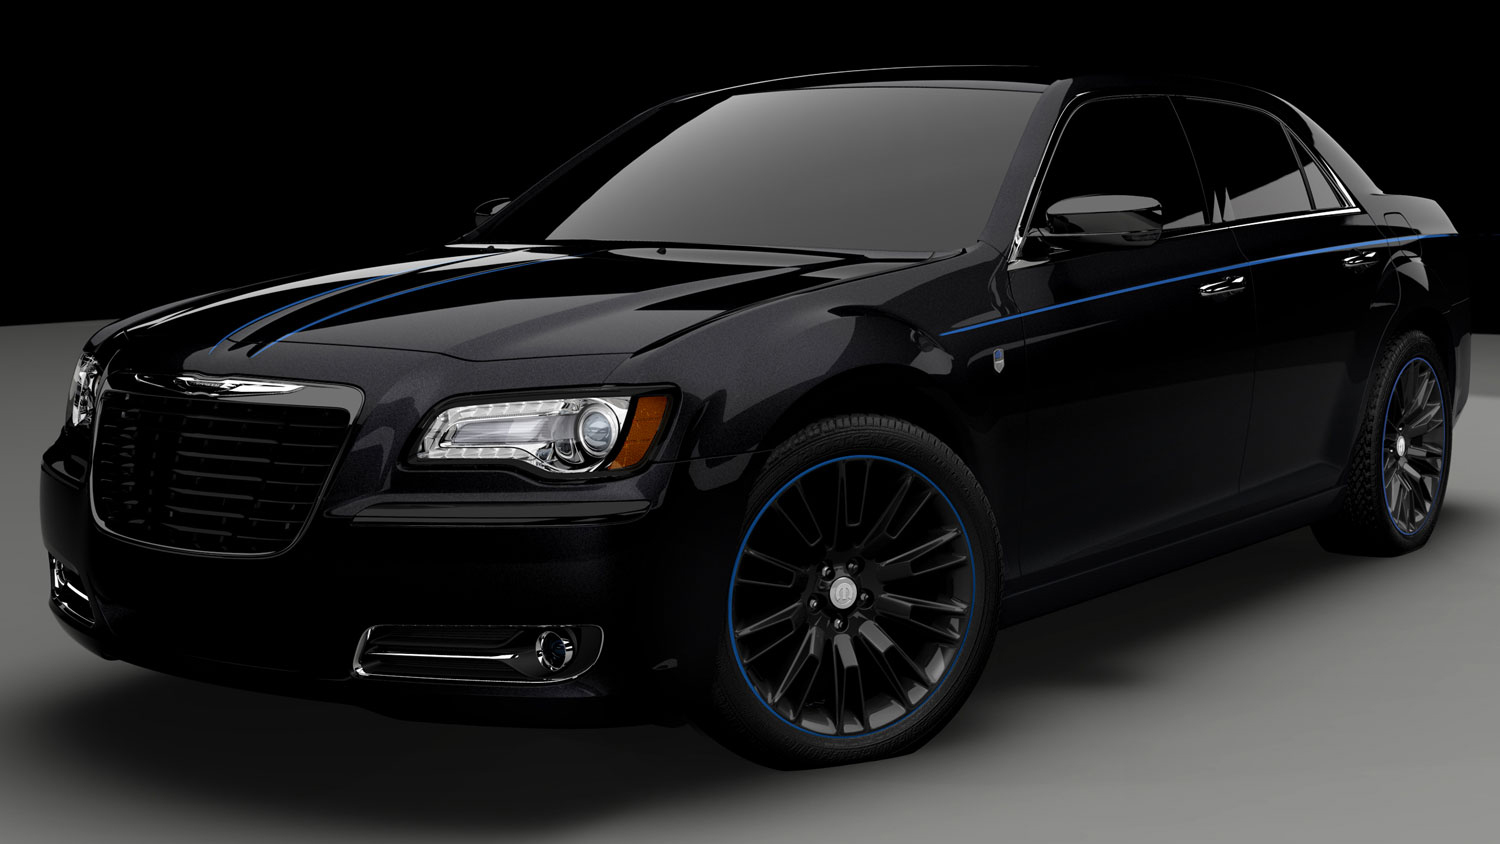 2012 Chrysler 300 Special Edition 75th Anniversary Of